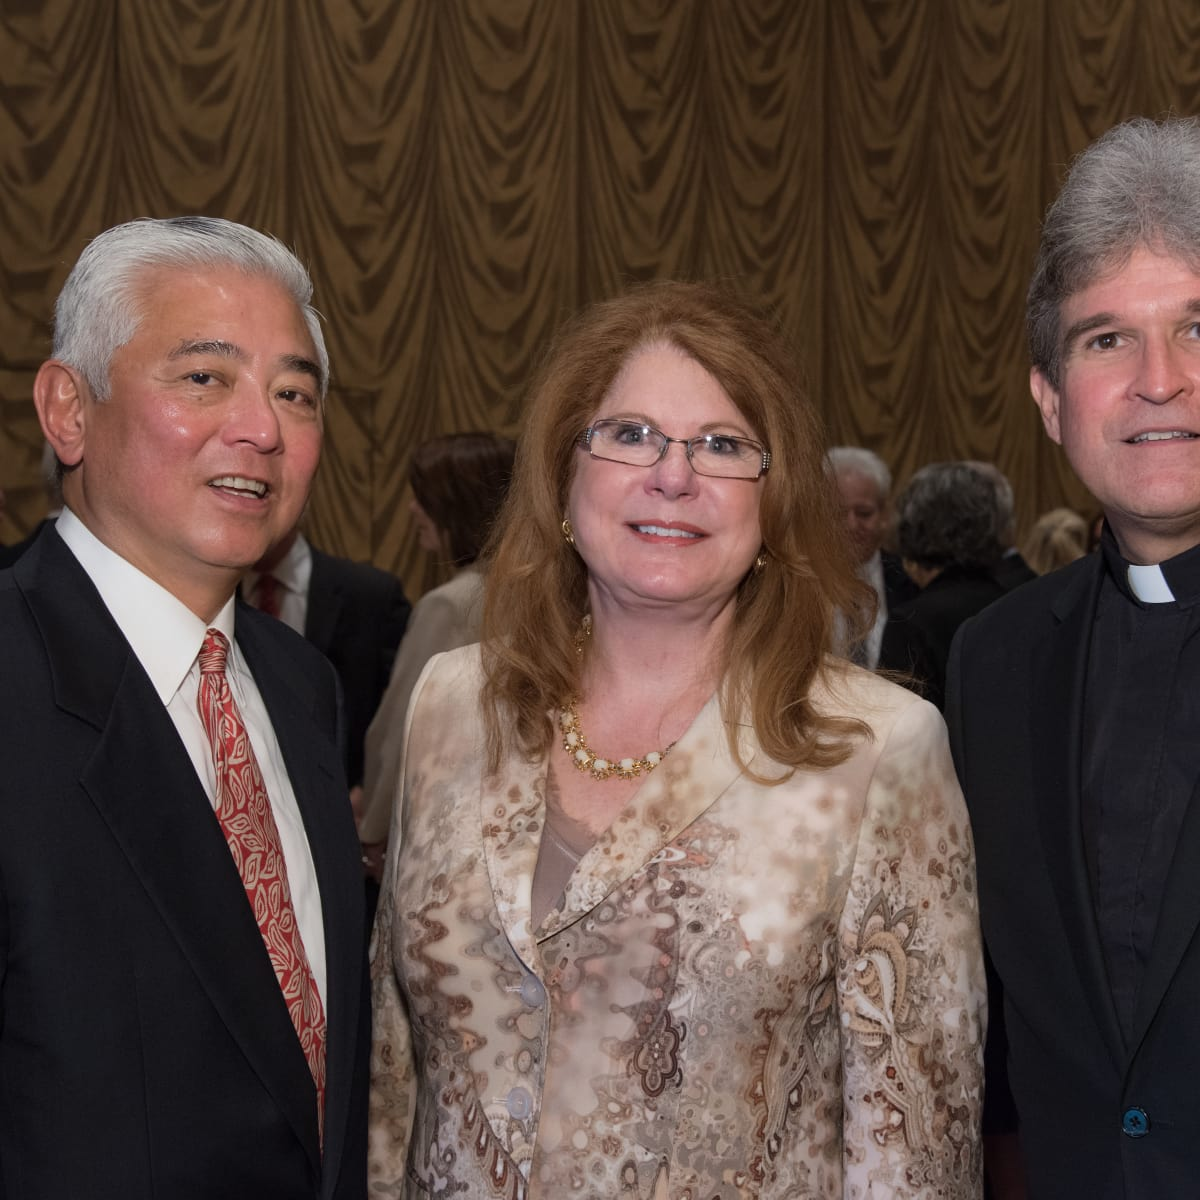 Center for Houston's Future luncheon, March 2016, Michael Jhin, Joni Baird, the Rev. Frank Rossi